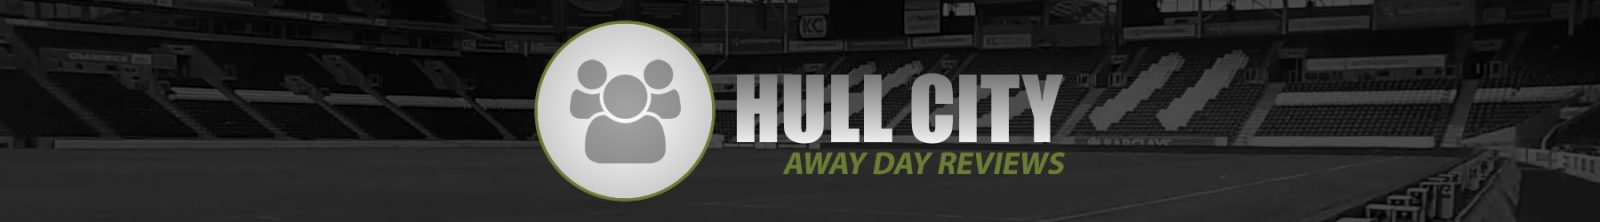 Review Hull City